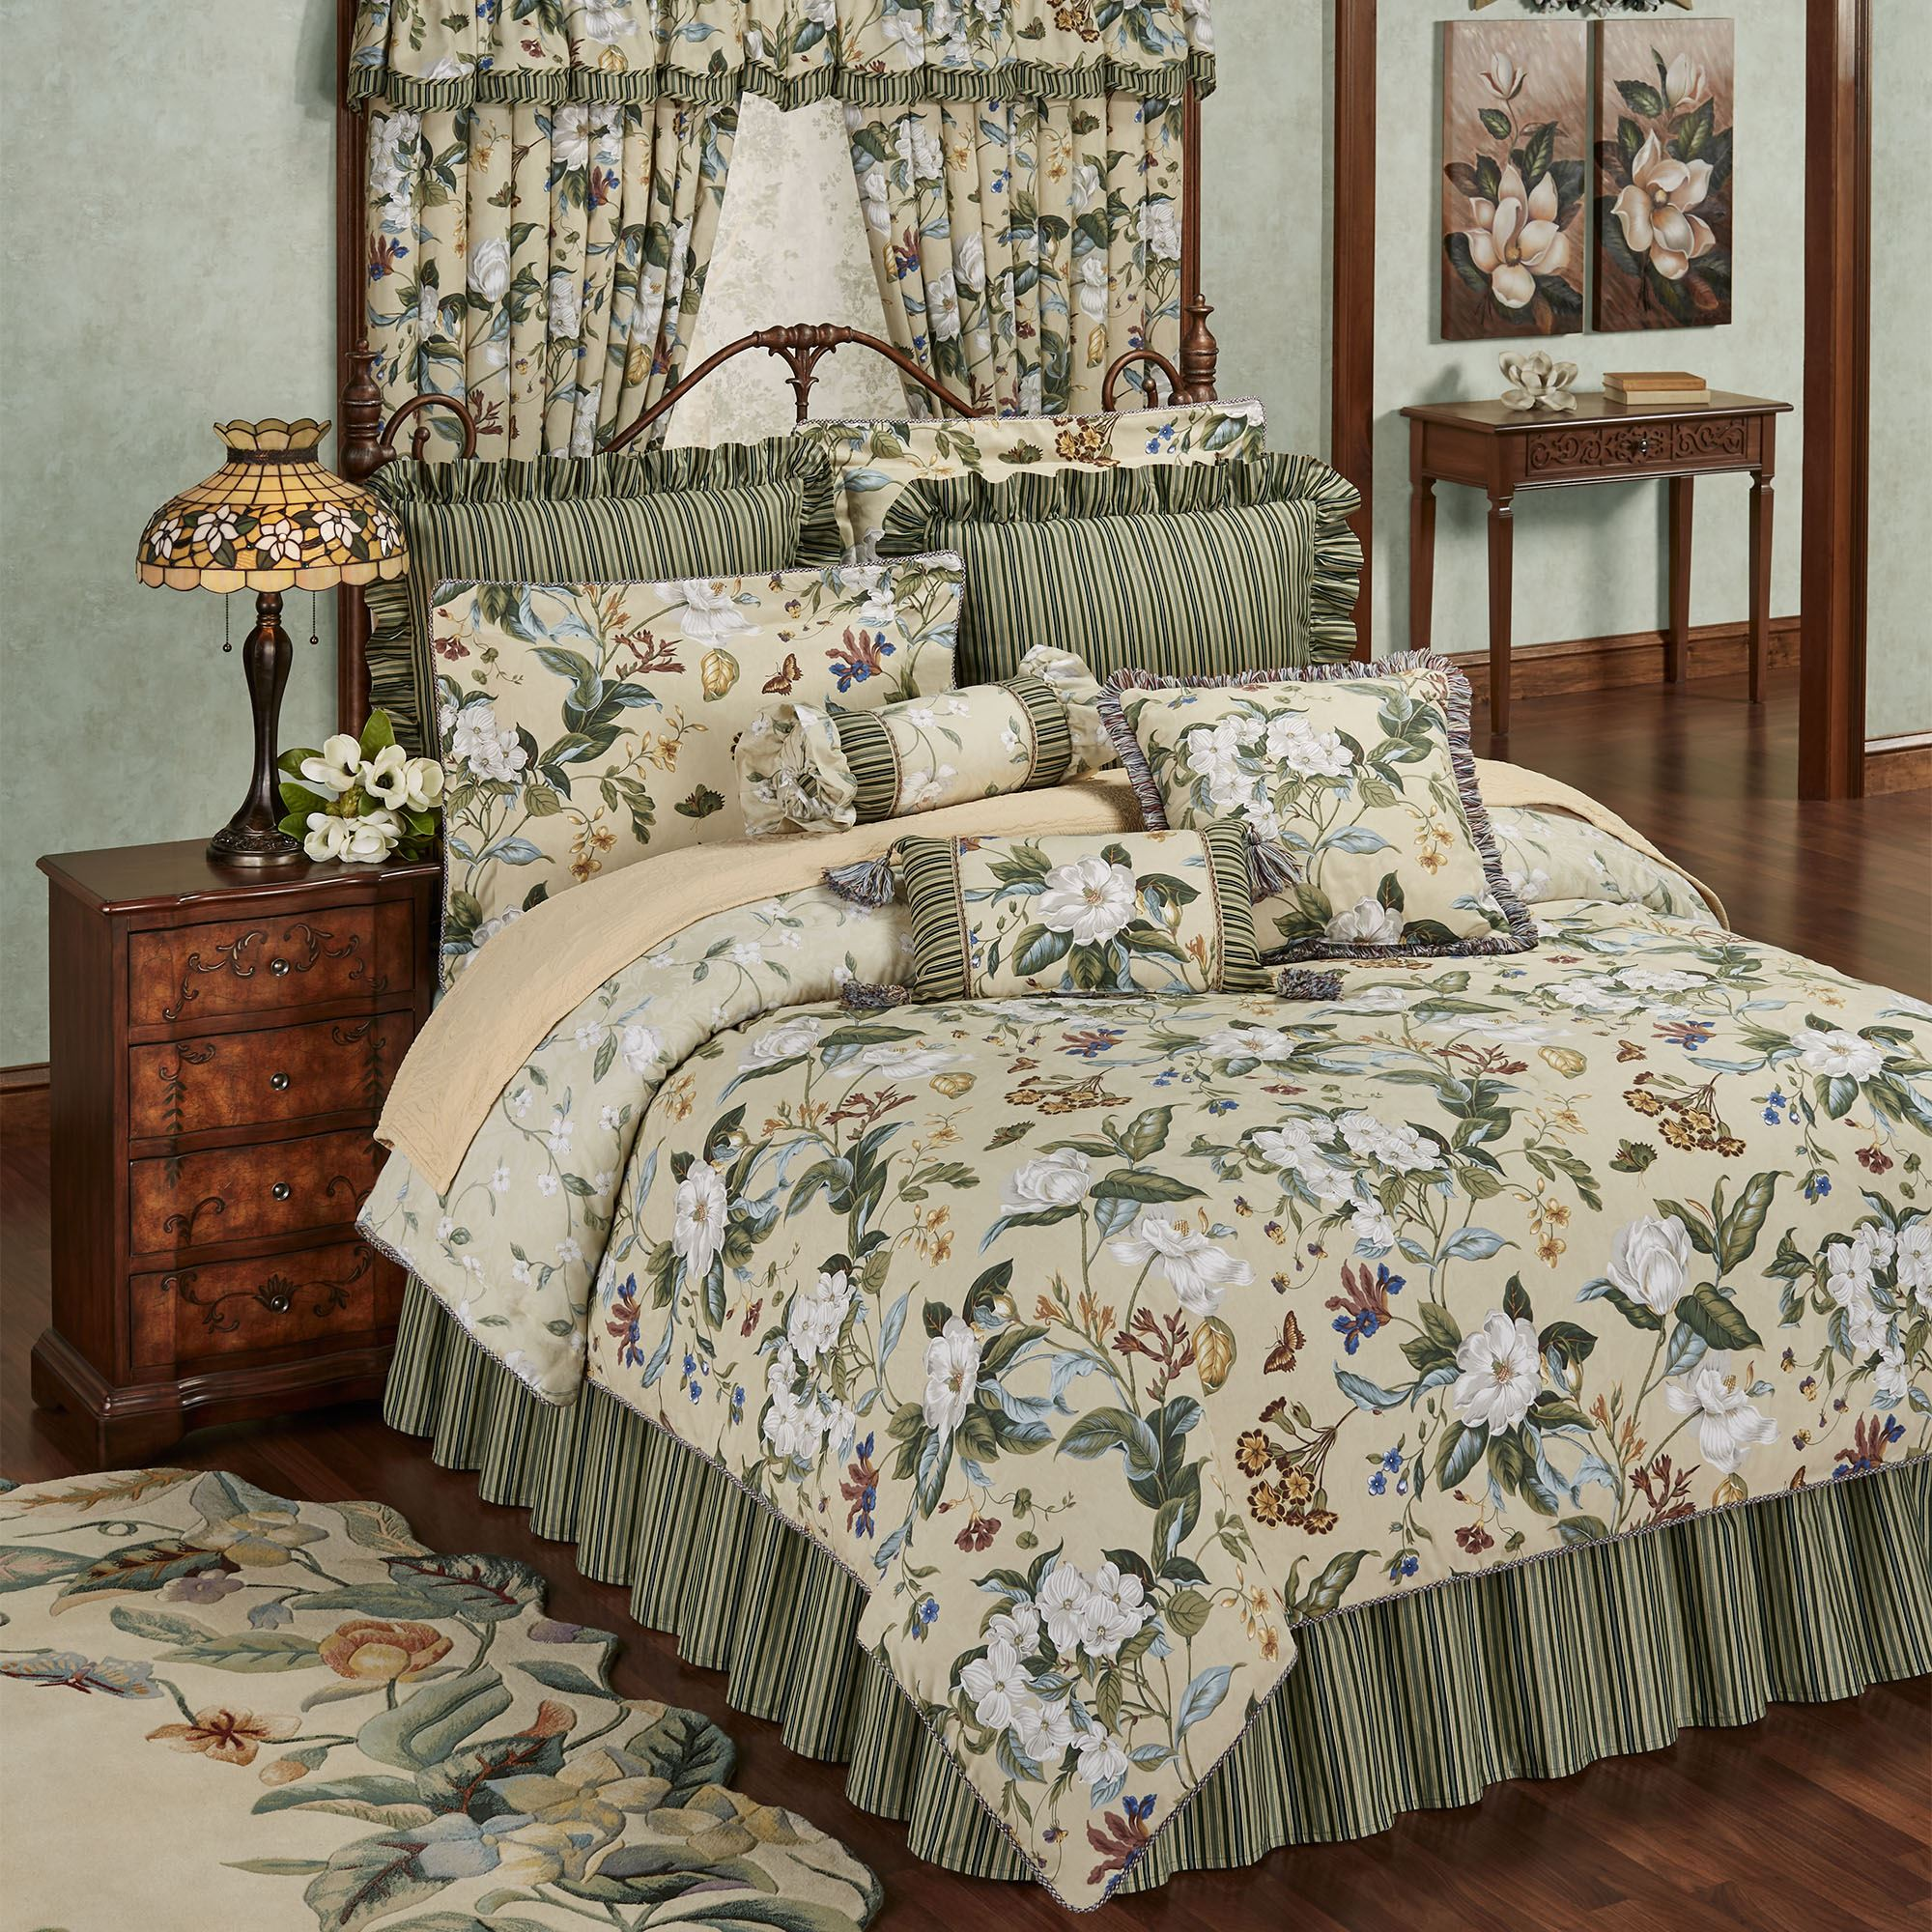 Details about  /Harvest Quilted Bedspread /& Pillow Shams Set Wooden Table Foods Print